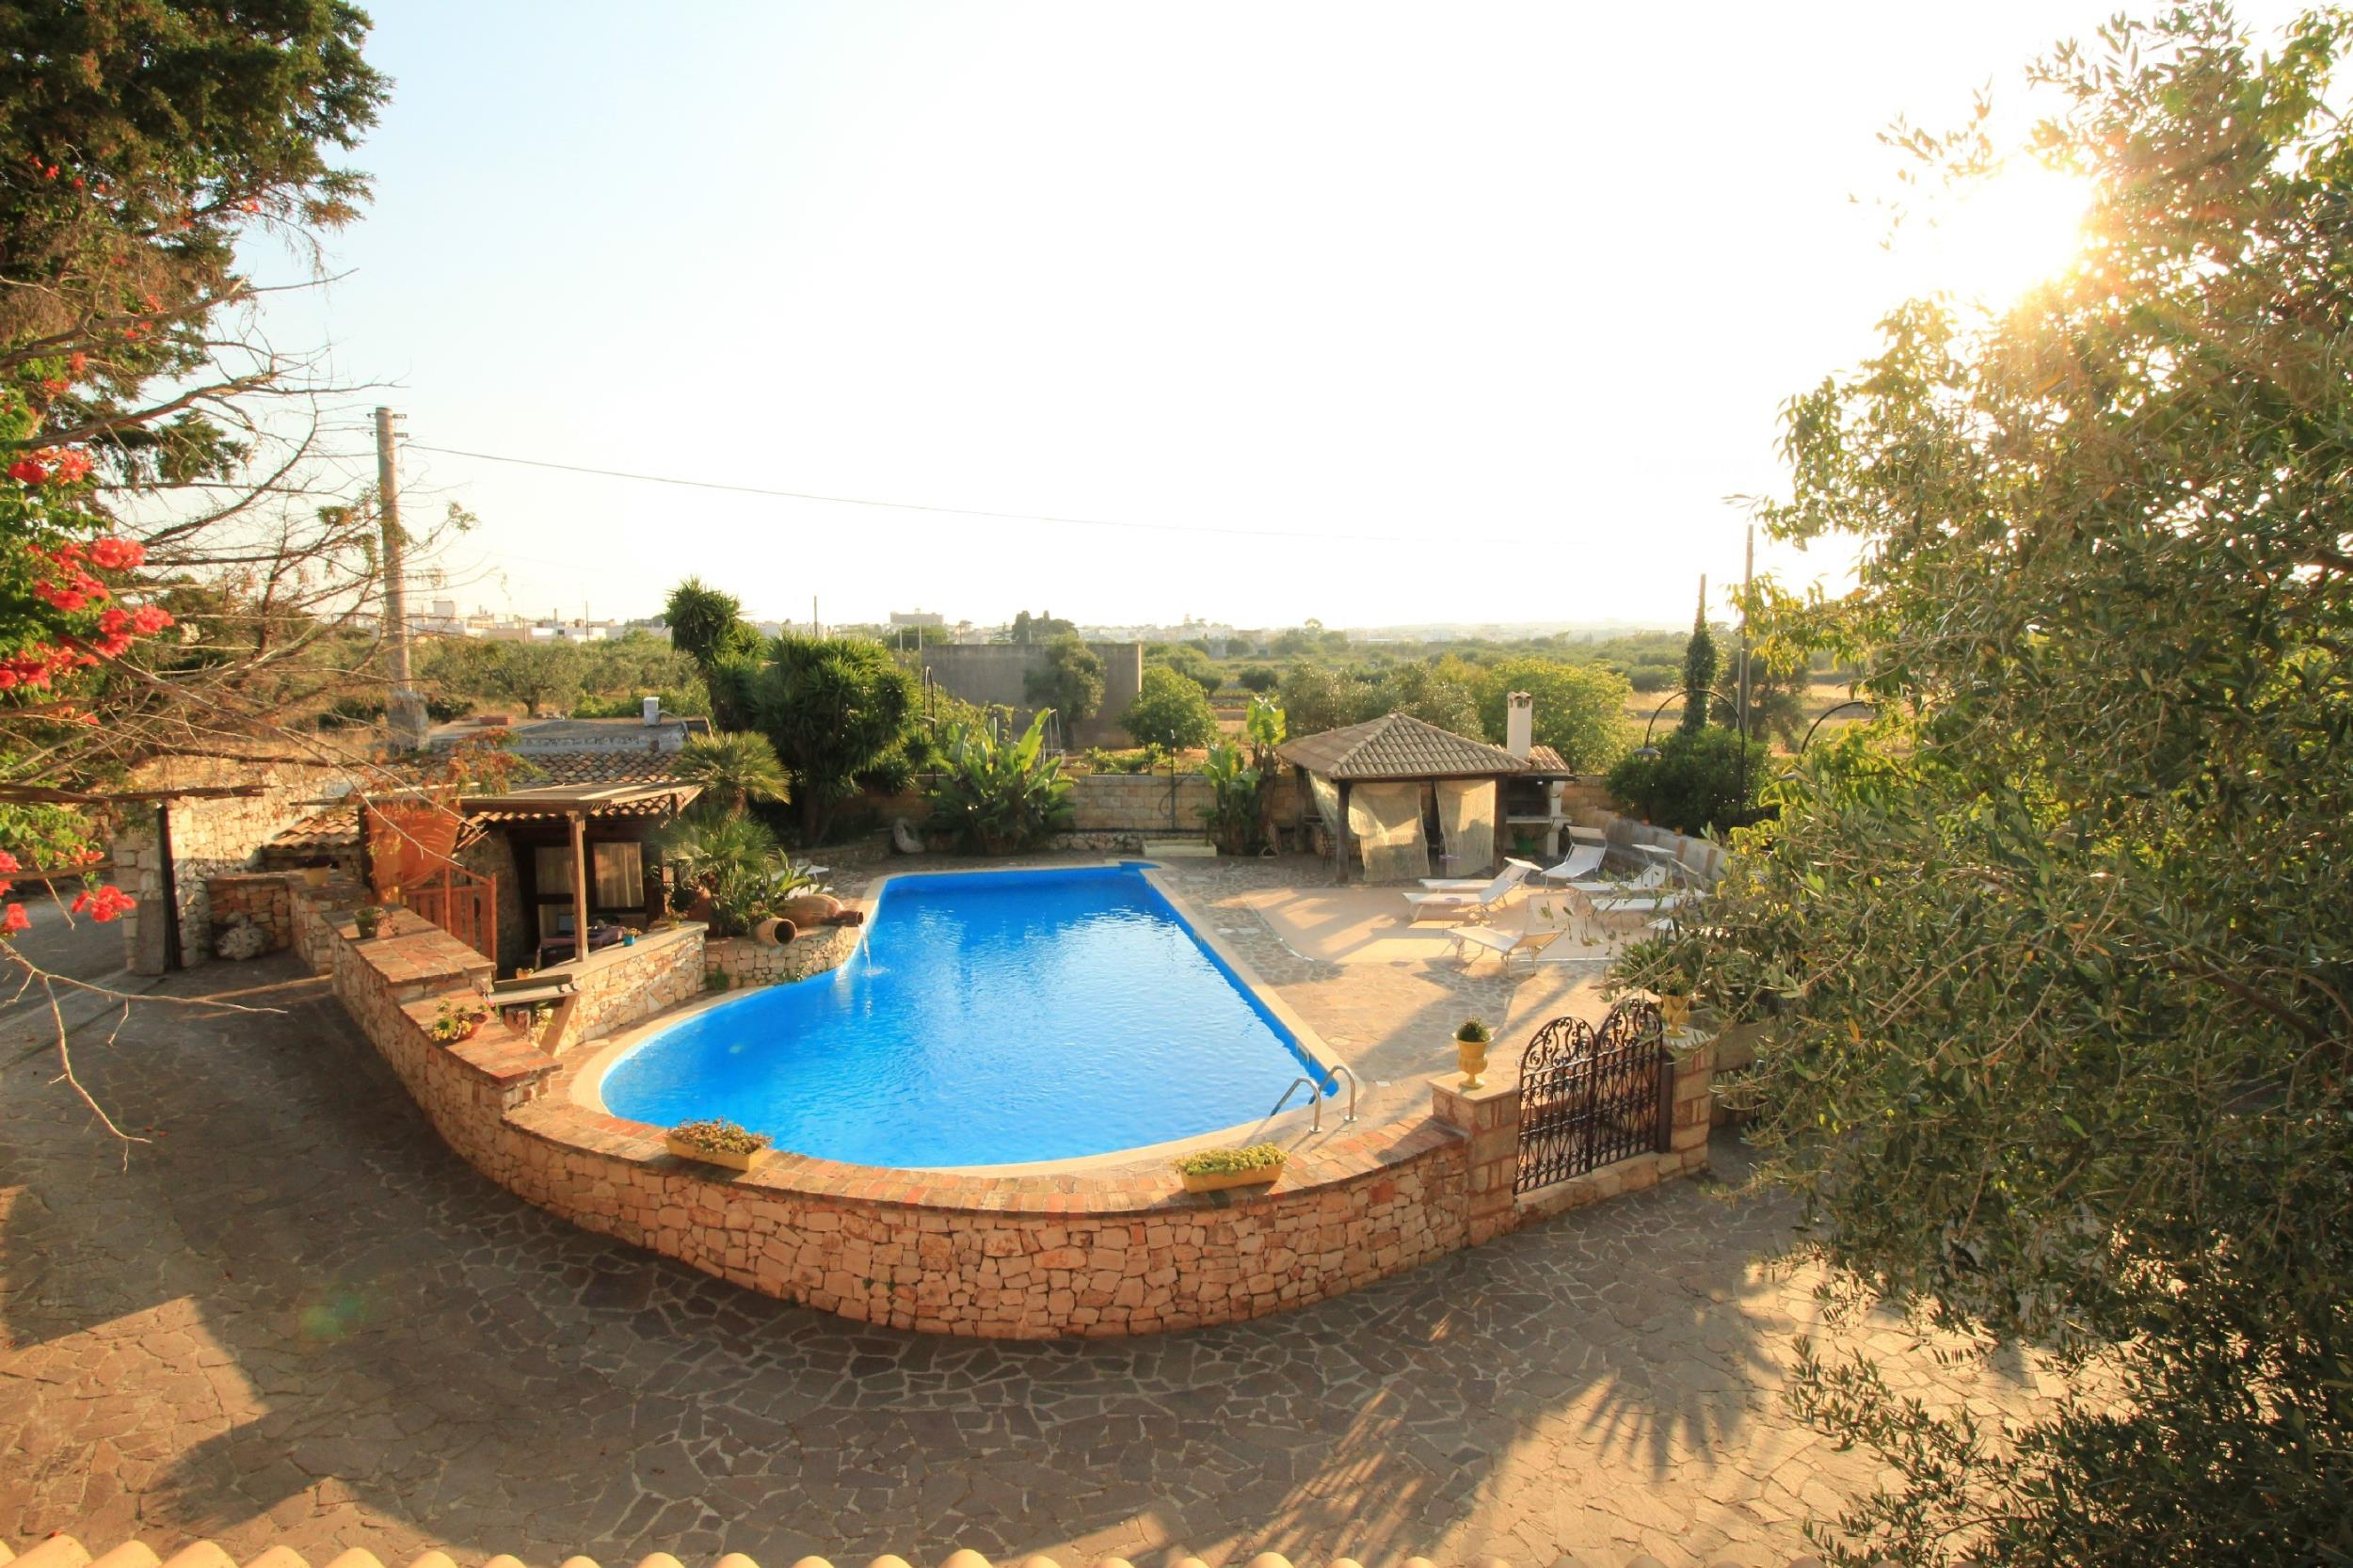 Apartment Trilo Noce shared pool photo 25188294